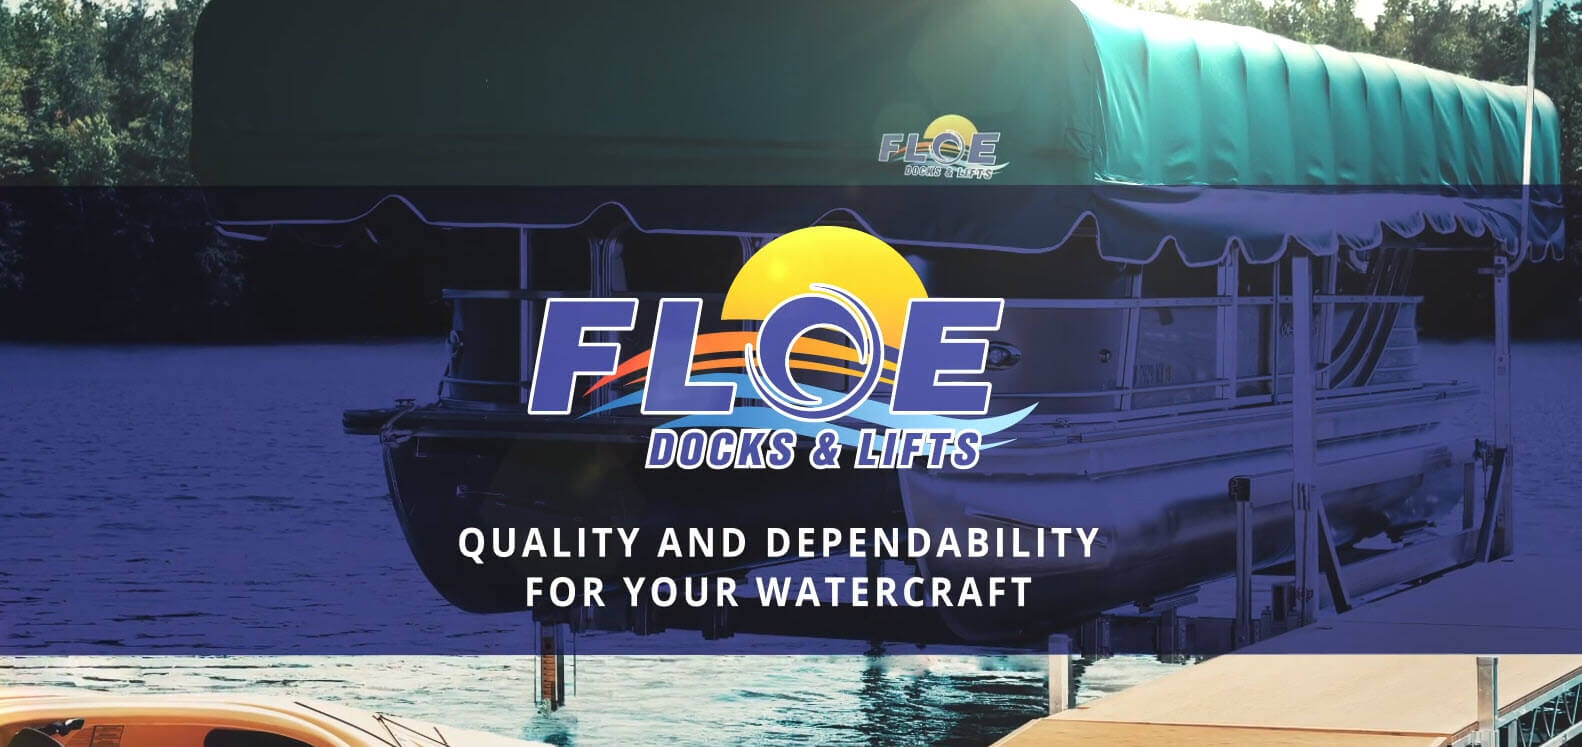 FLOE Docks & Lifts: Quality and Dependability for Your Watercraft